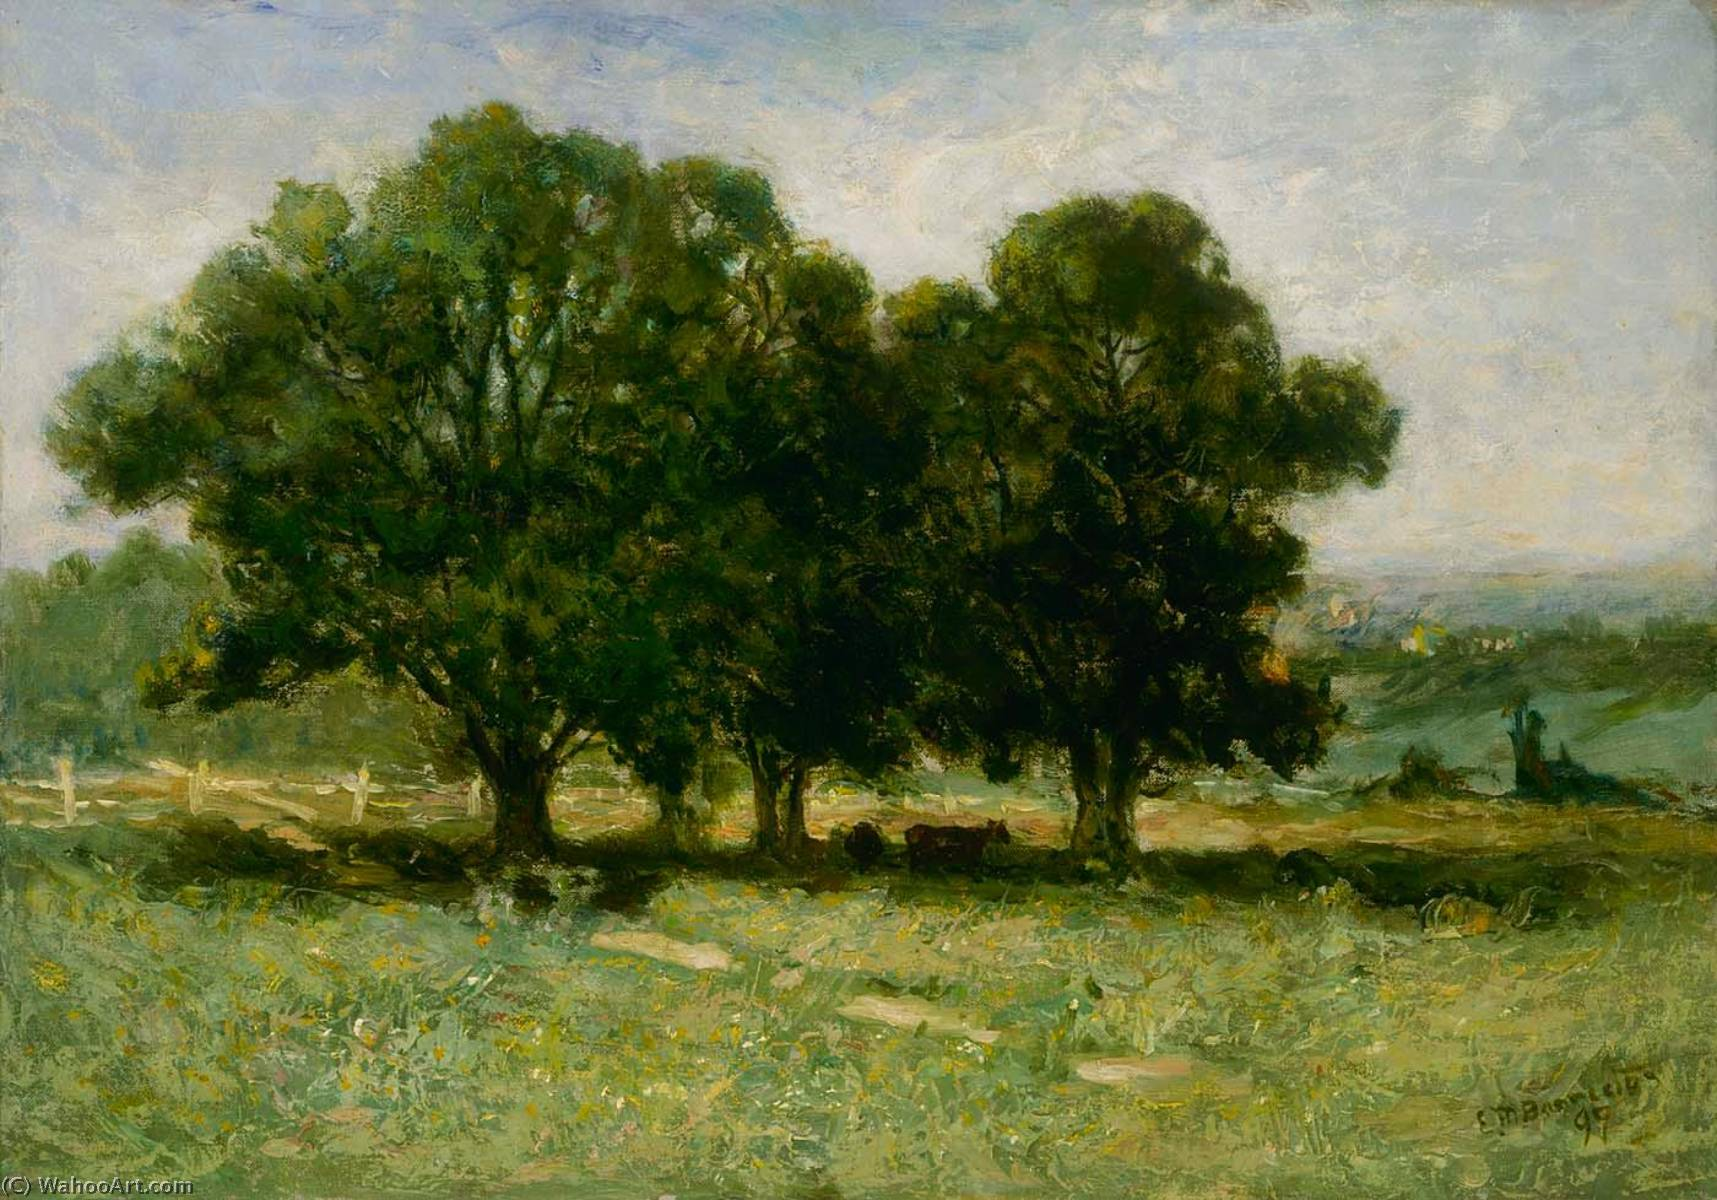 Achat Reproductions D'œuvres D'art | Paysage, 1895 de Edward Mitchell Bannister (1828-1901, Canada) | WahooArt.com